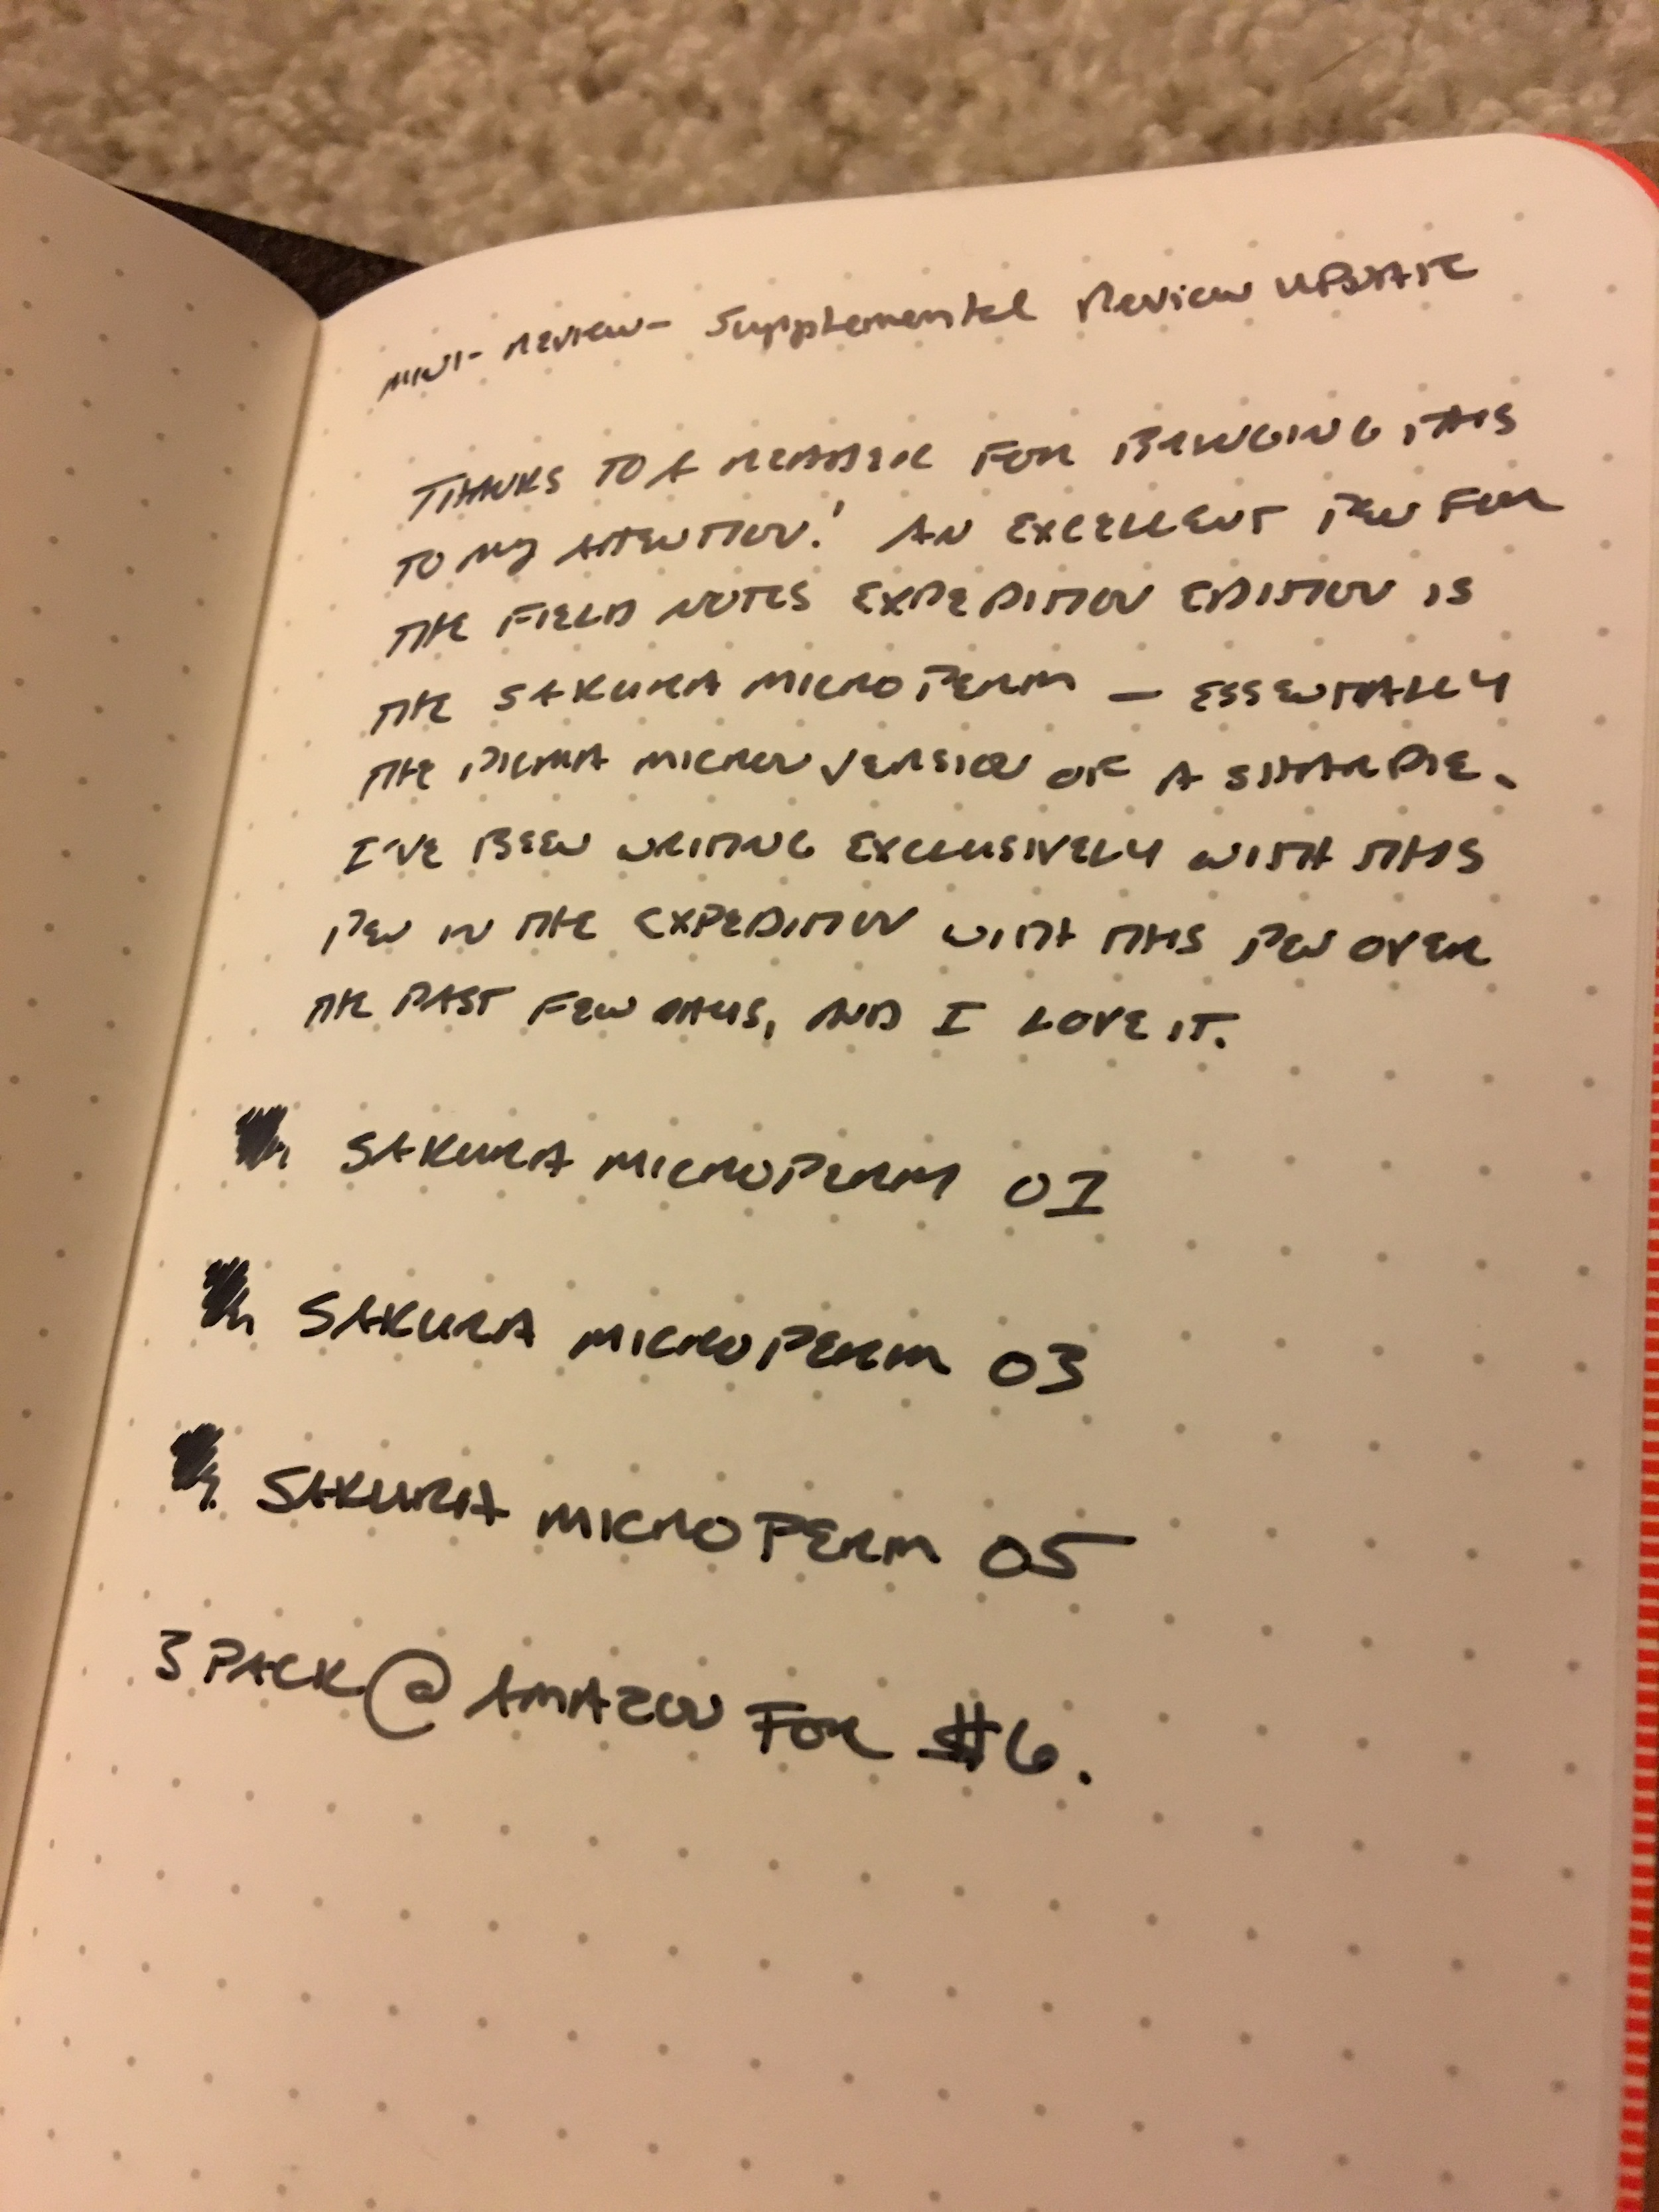 The Sakura Microperm 01 is my new pen of choice for the Field Notes Expedition edition.